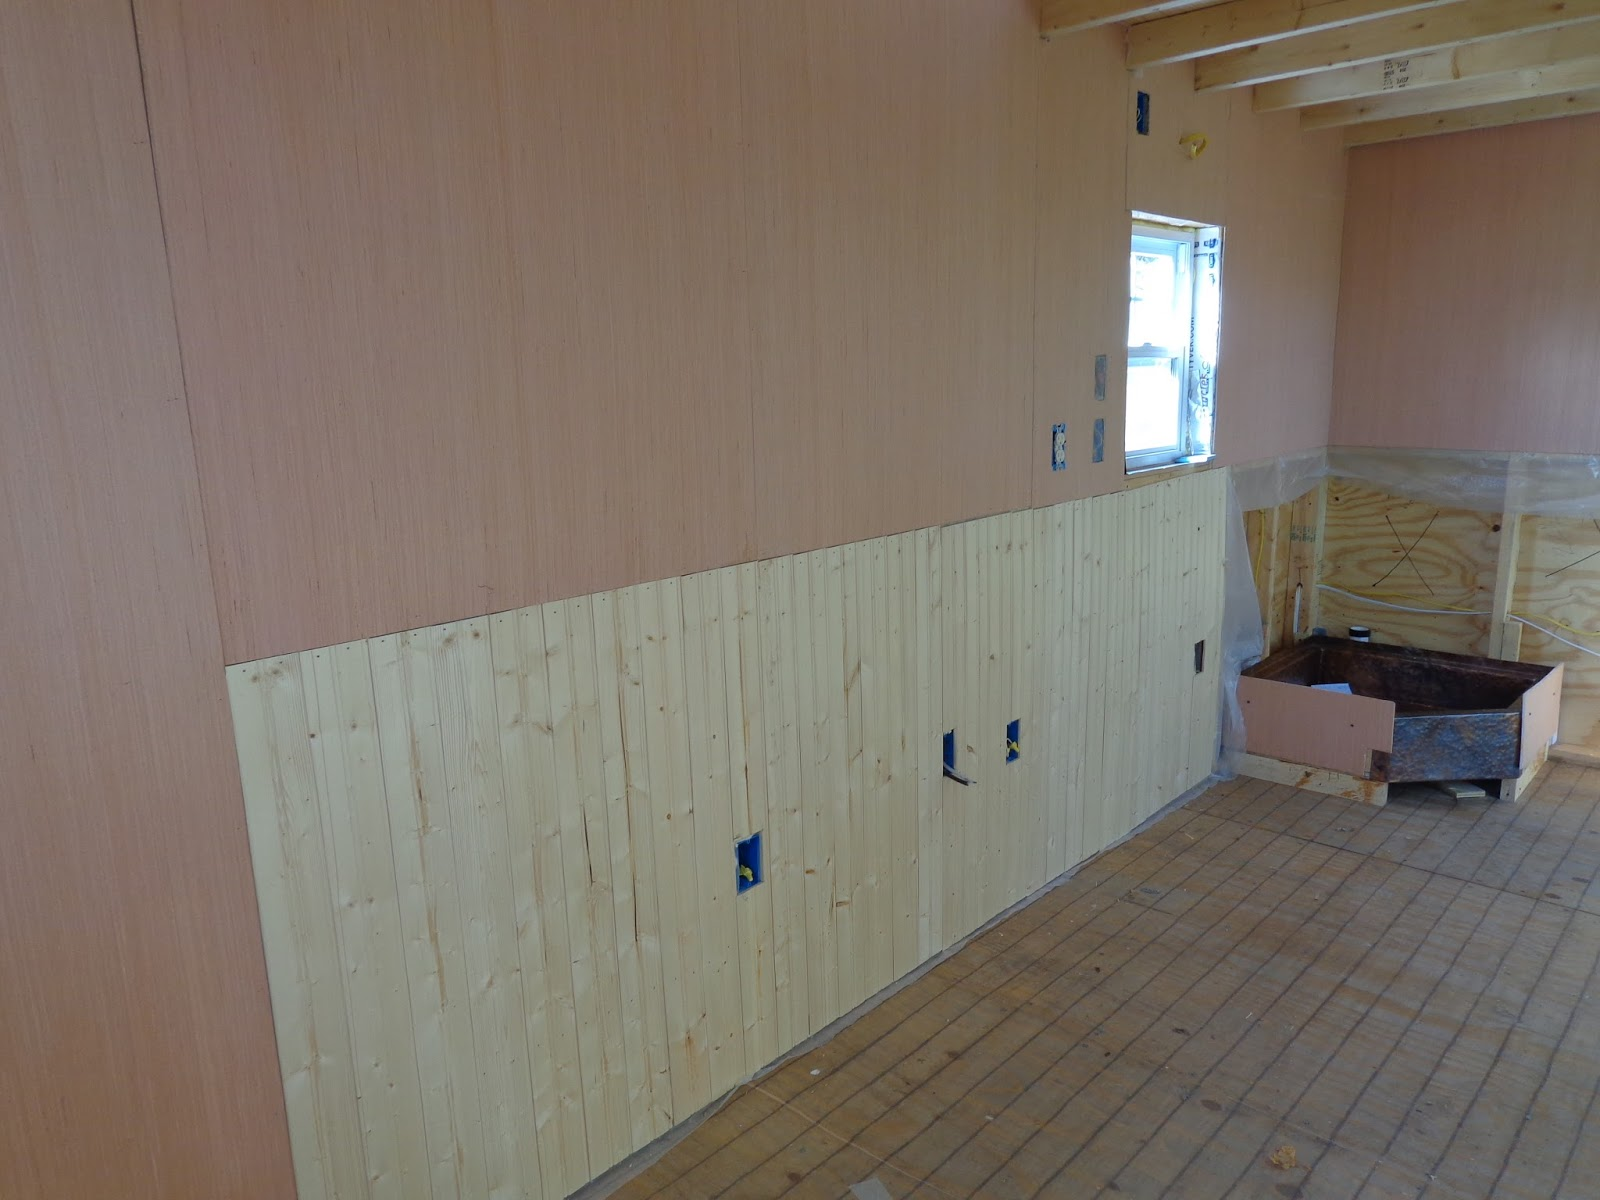 Kitchen Wainscoting Lh Growing A Tiny House On Wheels Three Views Of The Wainscoting